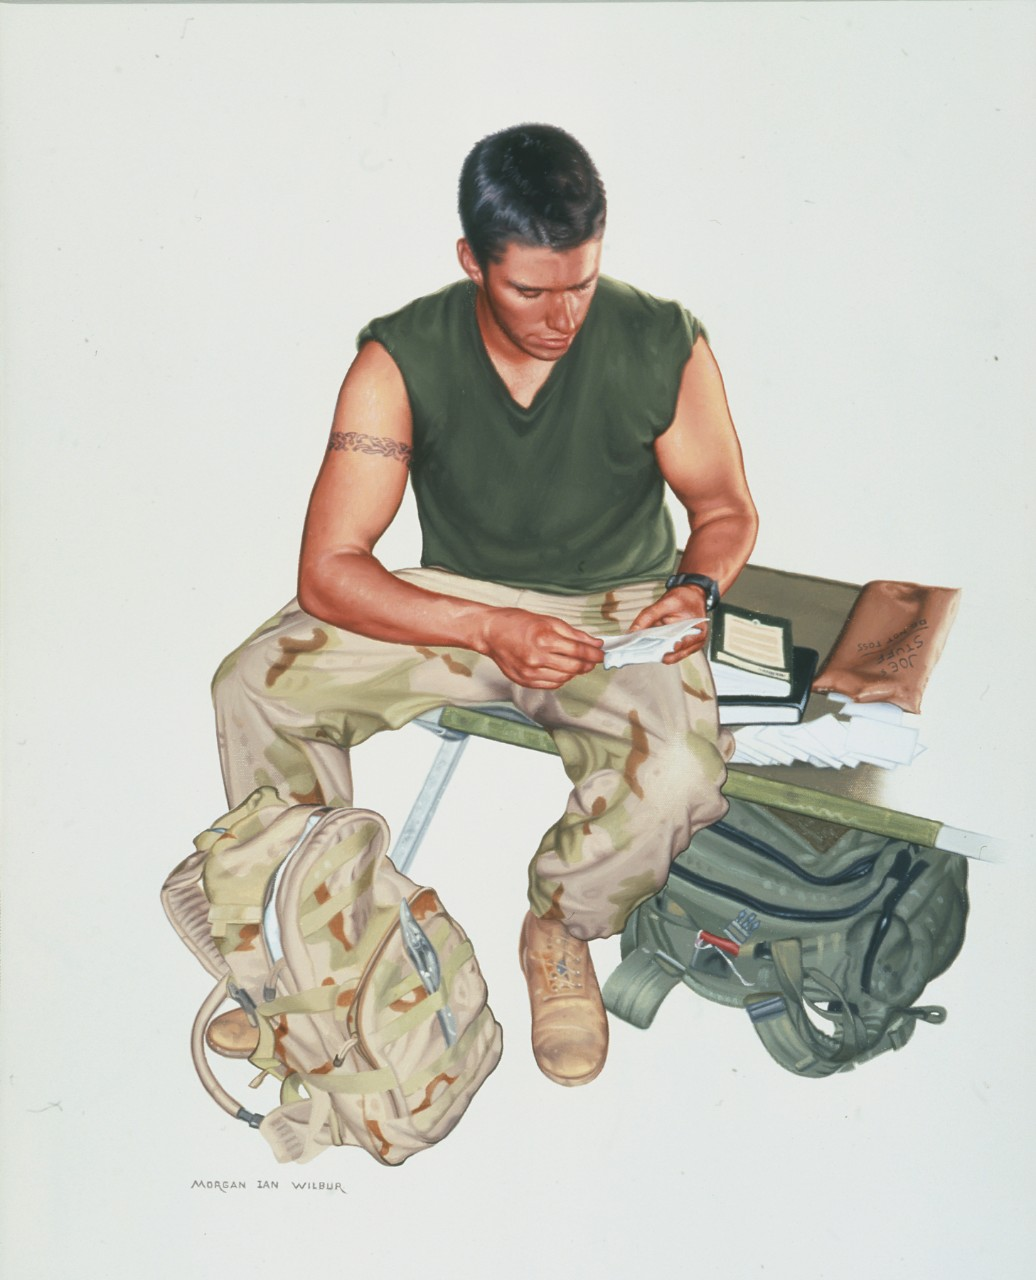 A navy corpsman sits on a cot reading a letter